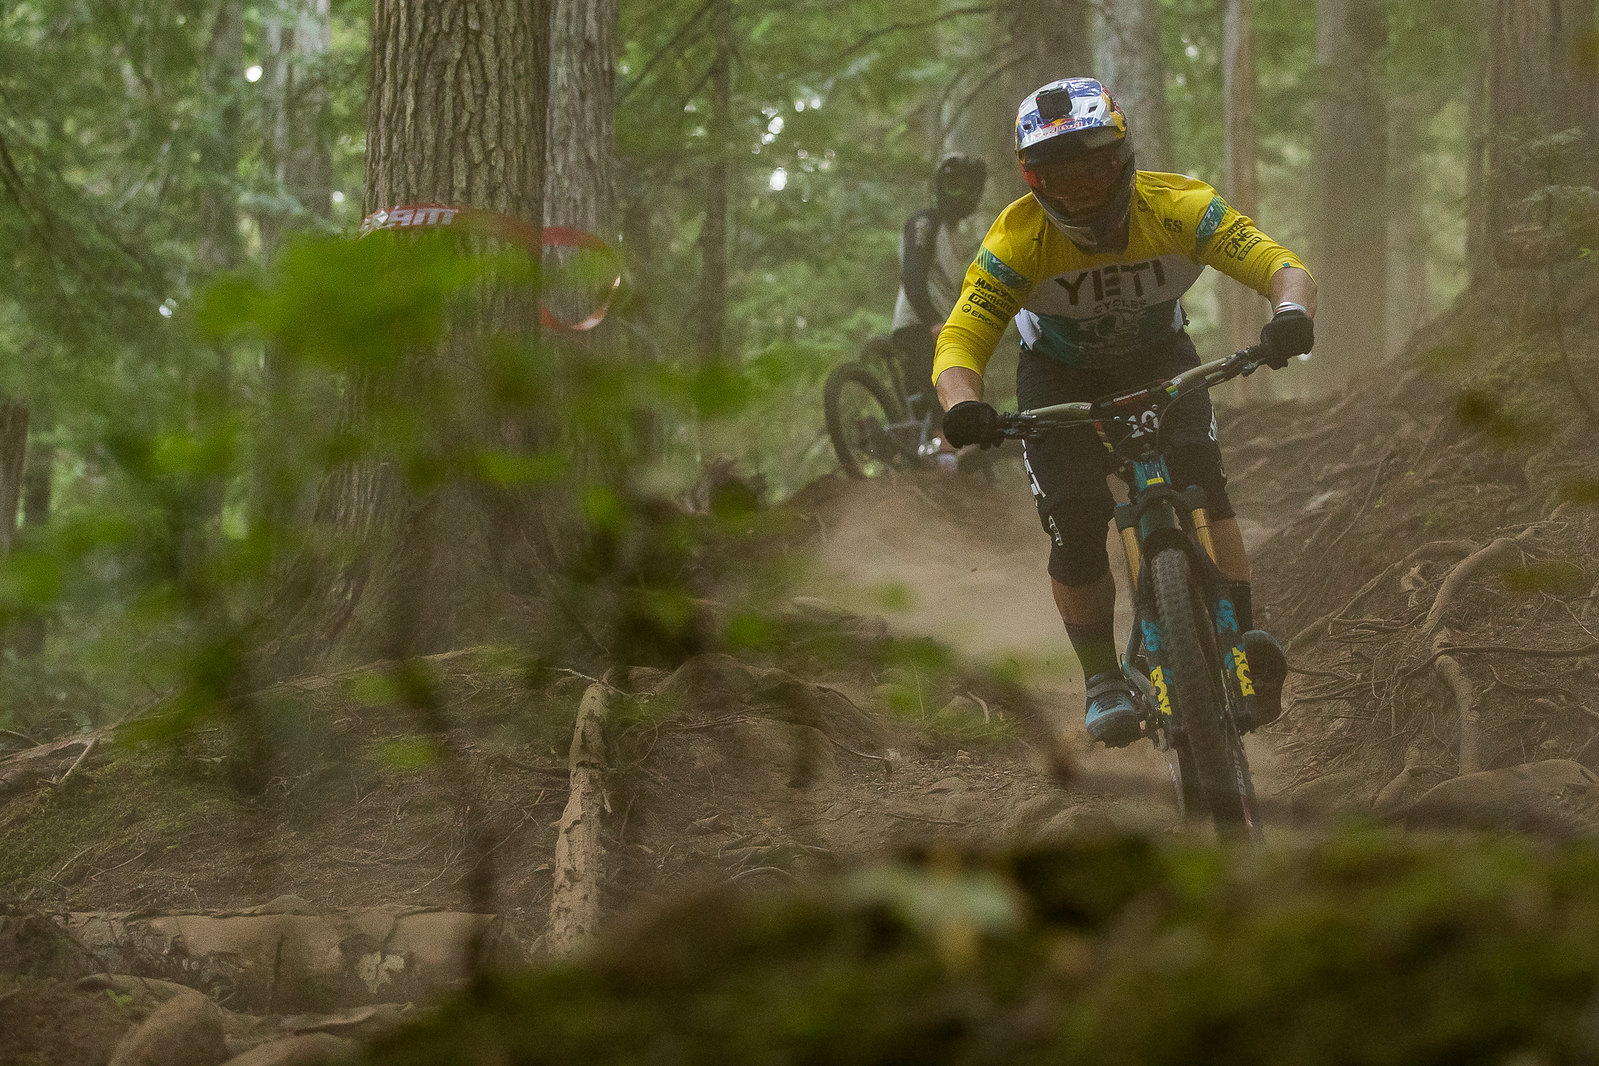 Cworx_Whistler_1392_FBritton_Enduro_Rude